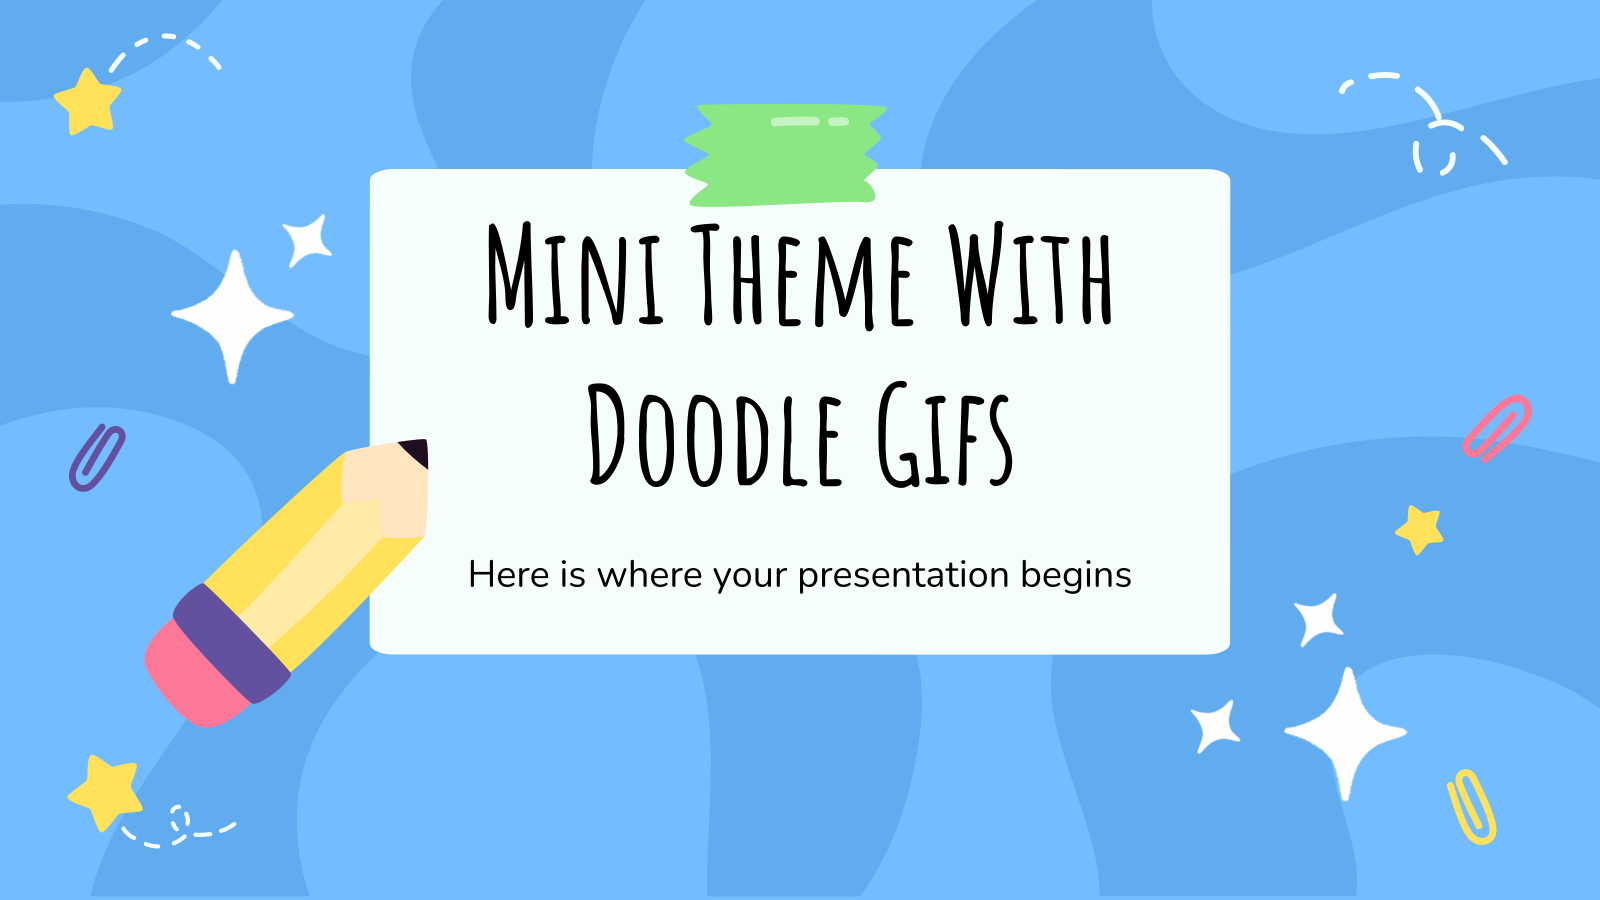 Mini Theme With Doodle Gifs presentation template